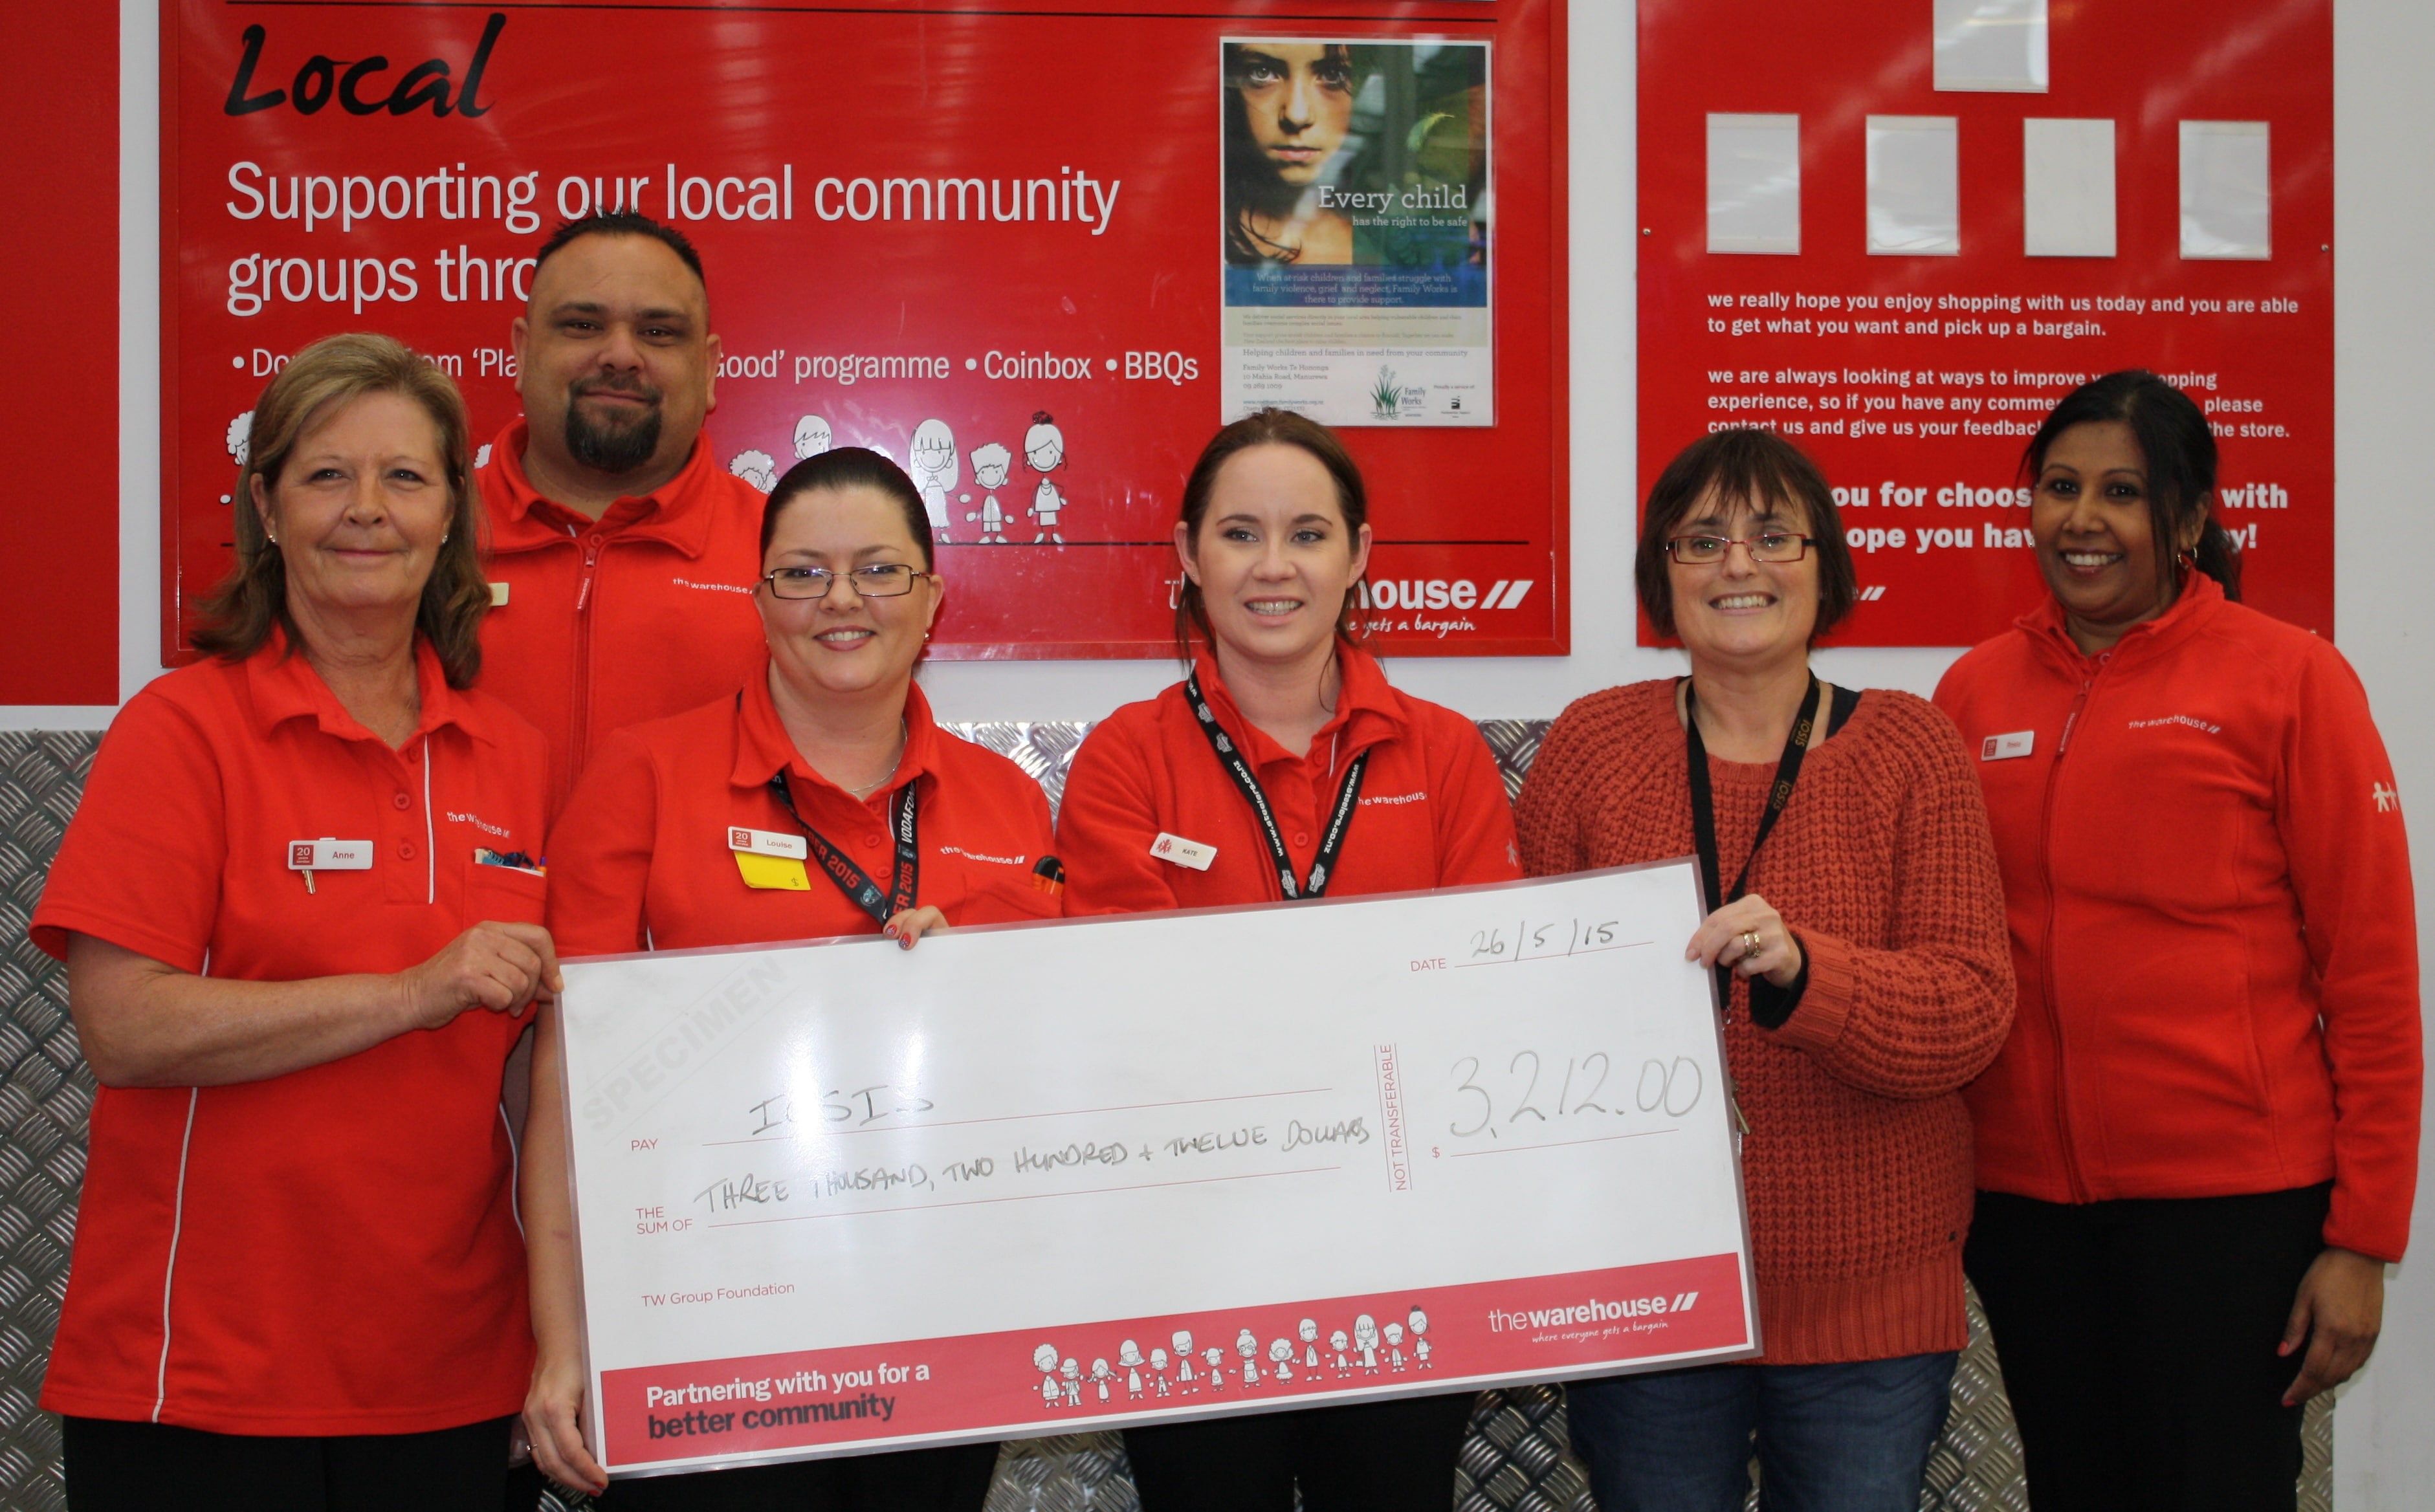 The Warehouse staff present cheque to Iosis